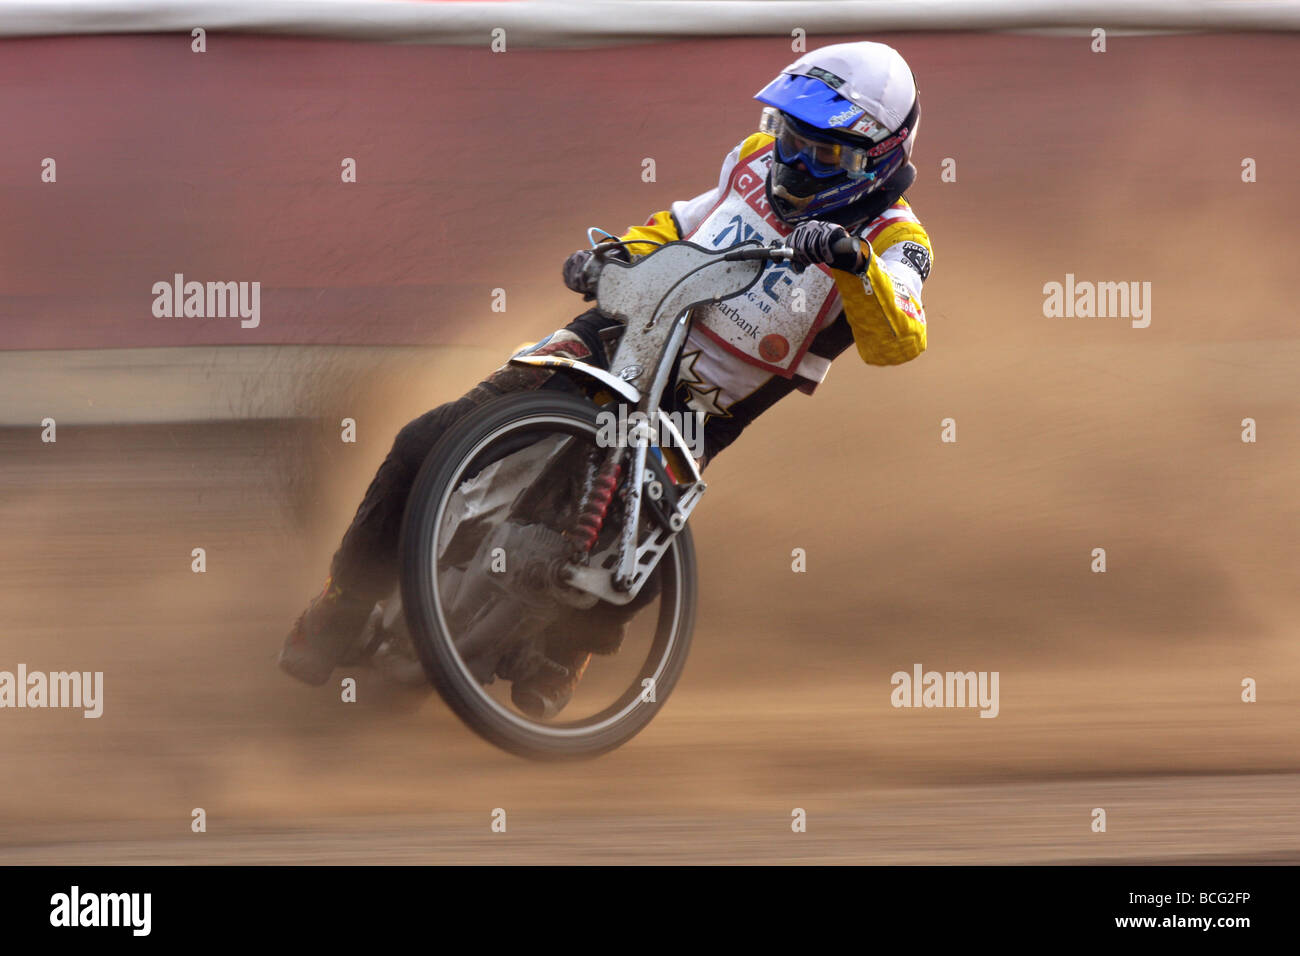 Speedway racing at Svansta race track in Nyköping, Sweden. Team Griparna. - Stock Image